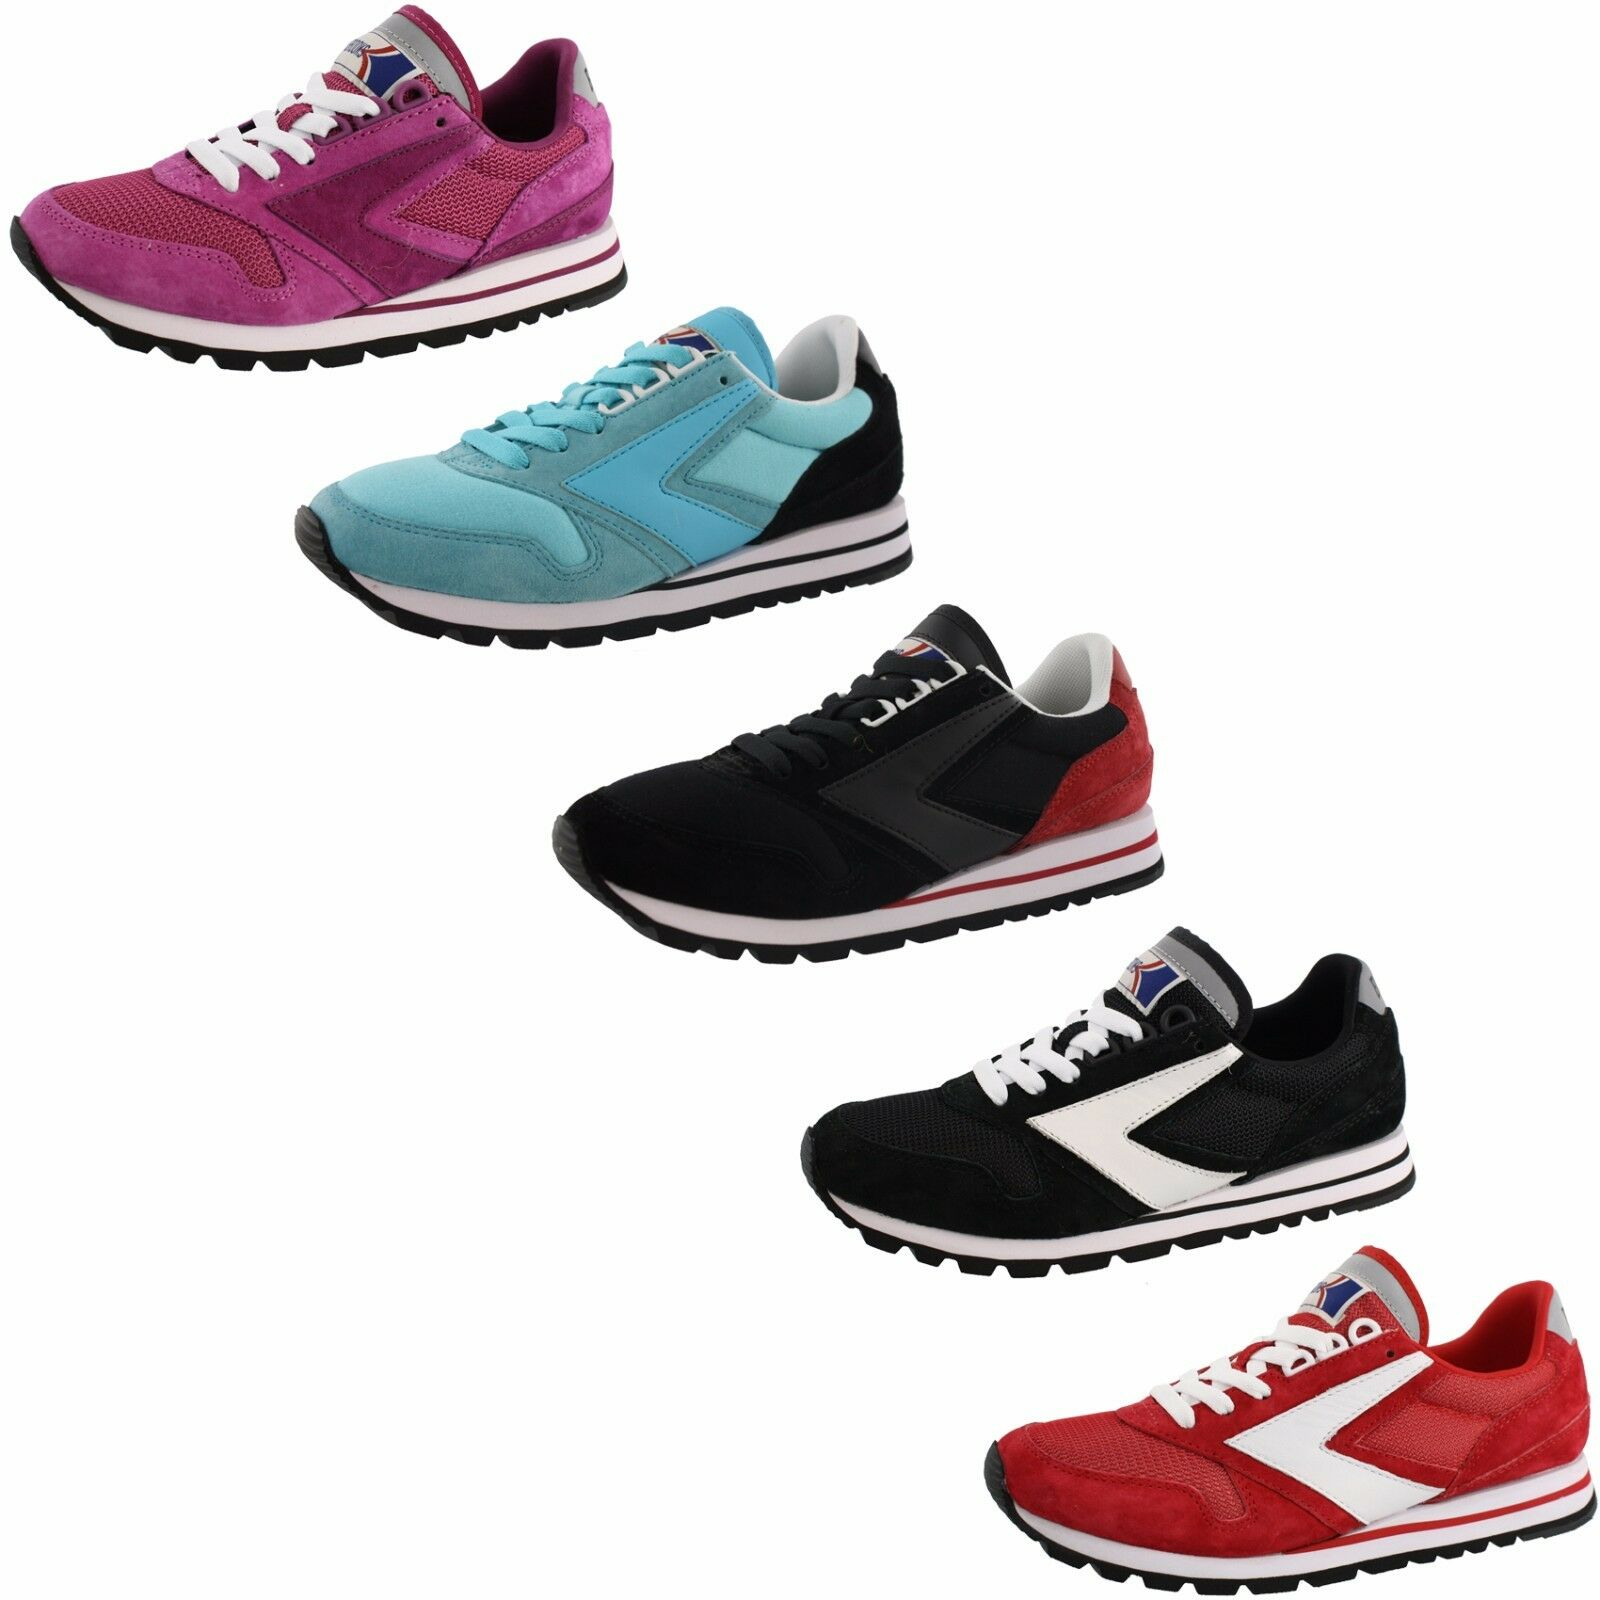 WOMENS BROOKS CHARIOT CLASSIC RETRO SHOES